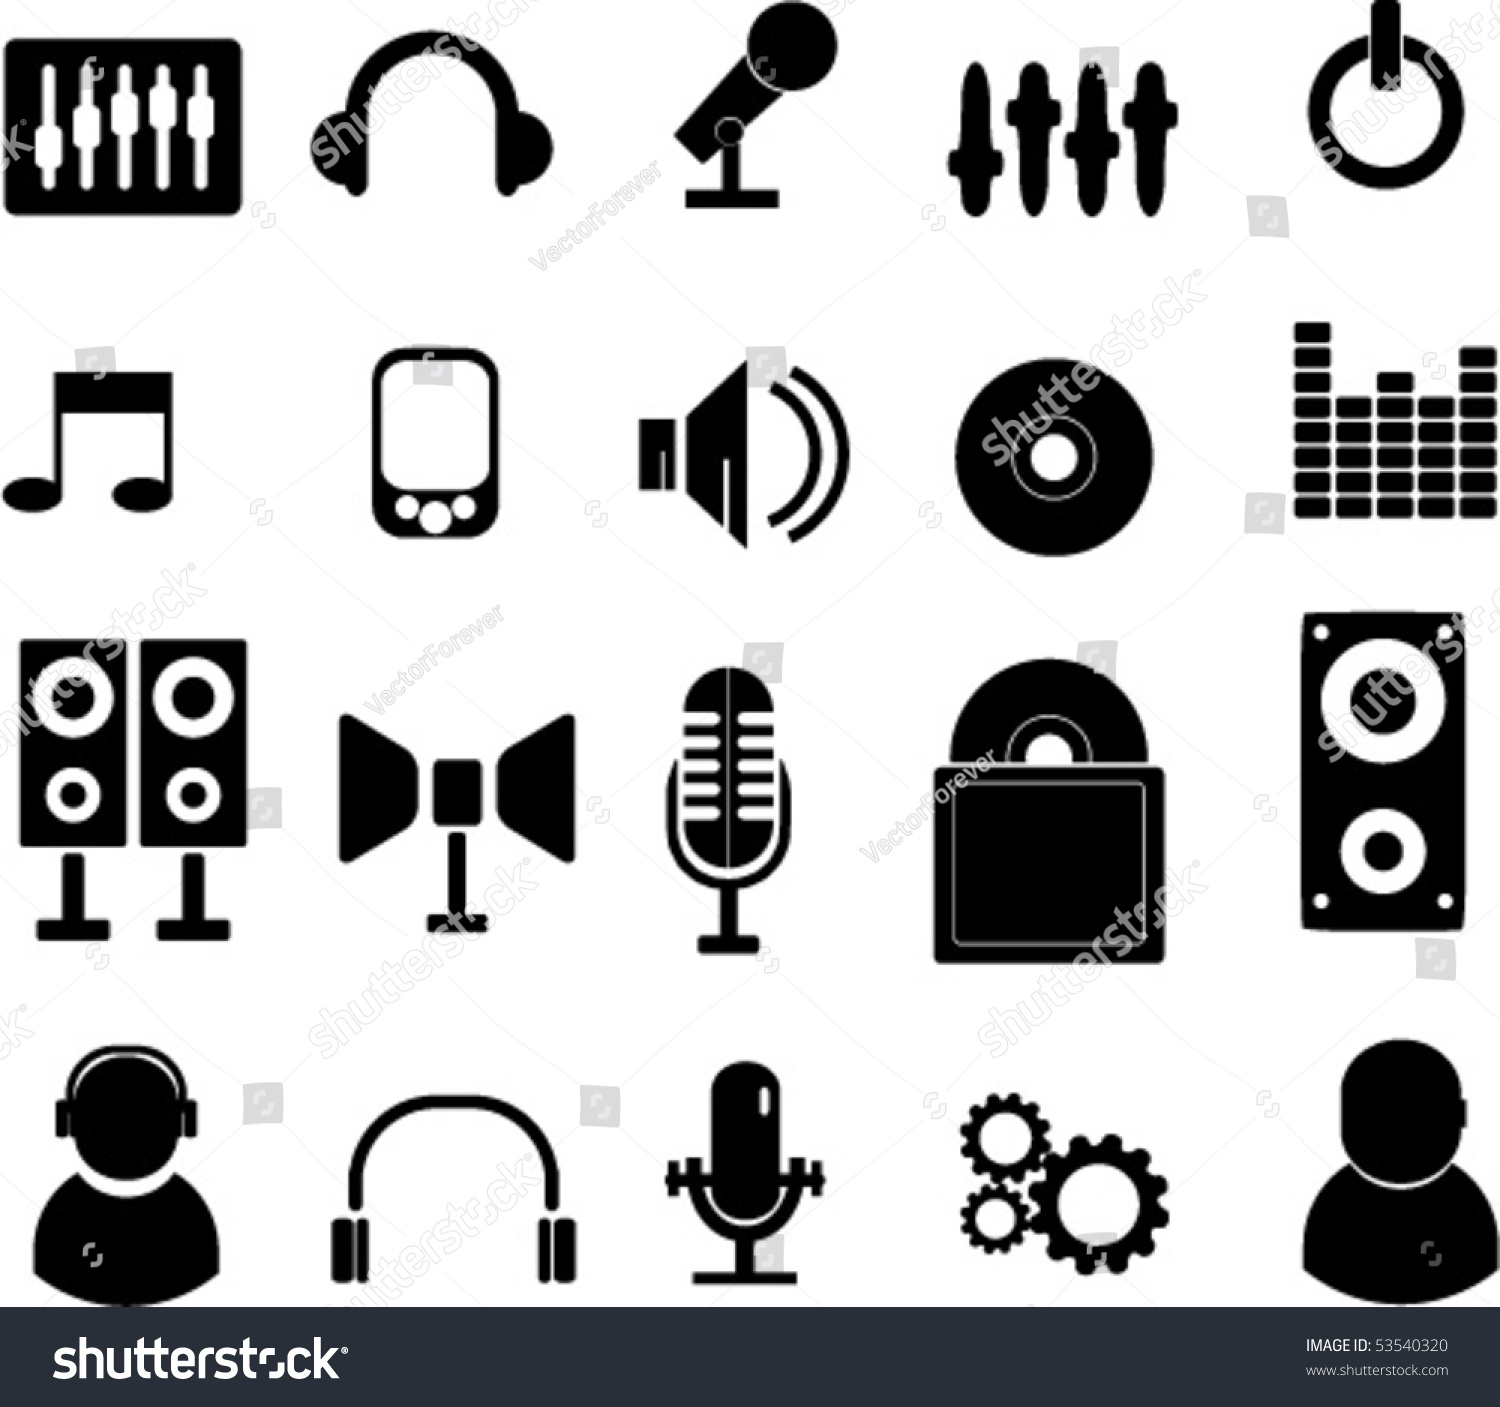 20 Music Signs Vector Stock Vector 53540320 - Shutterstock